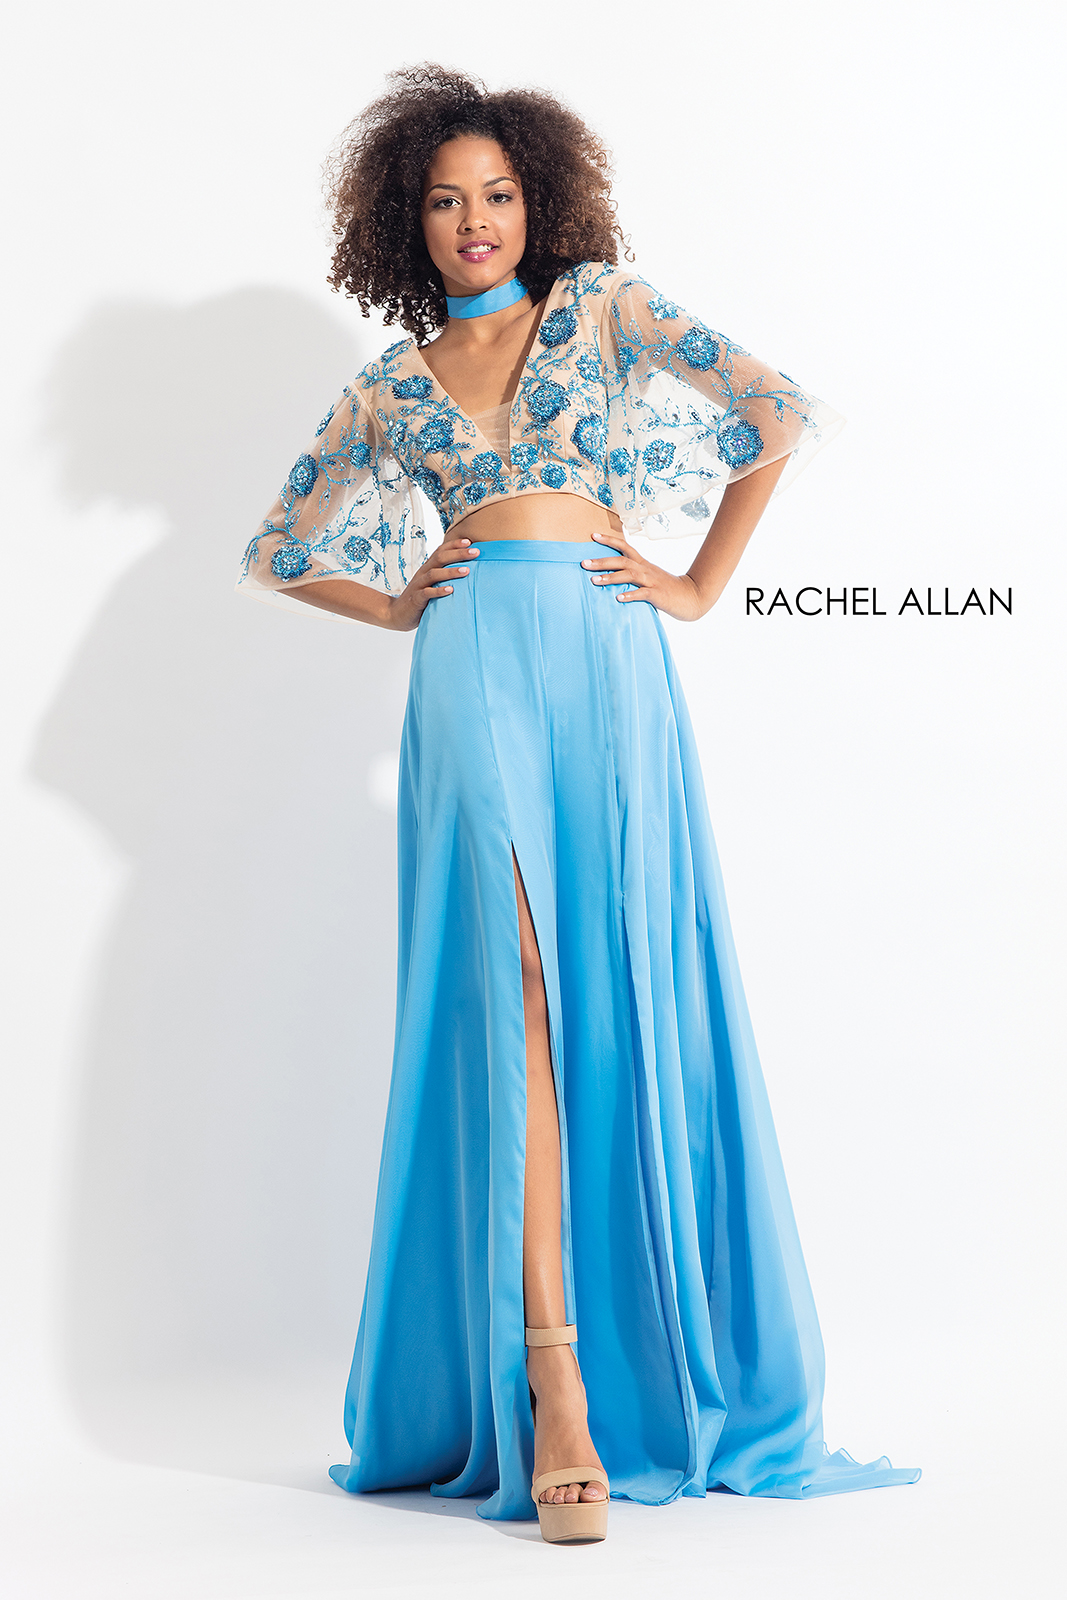 Cut Out Two-Piece Prom Dresses in Aqua Color